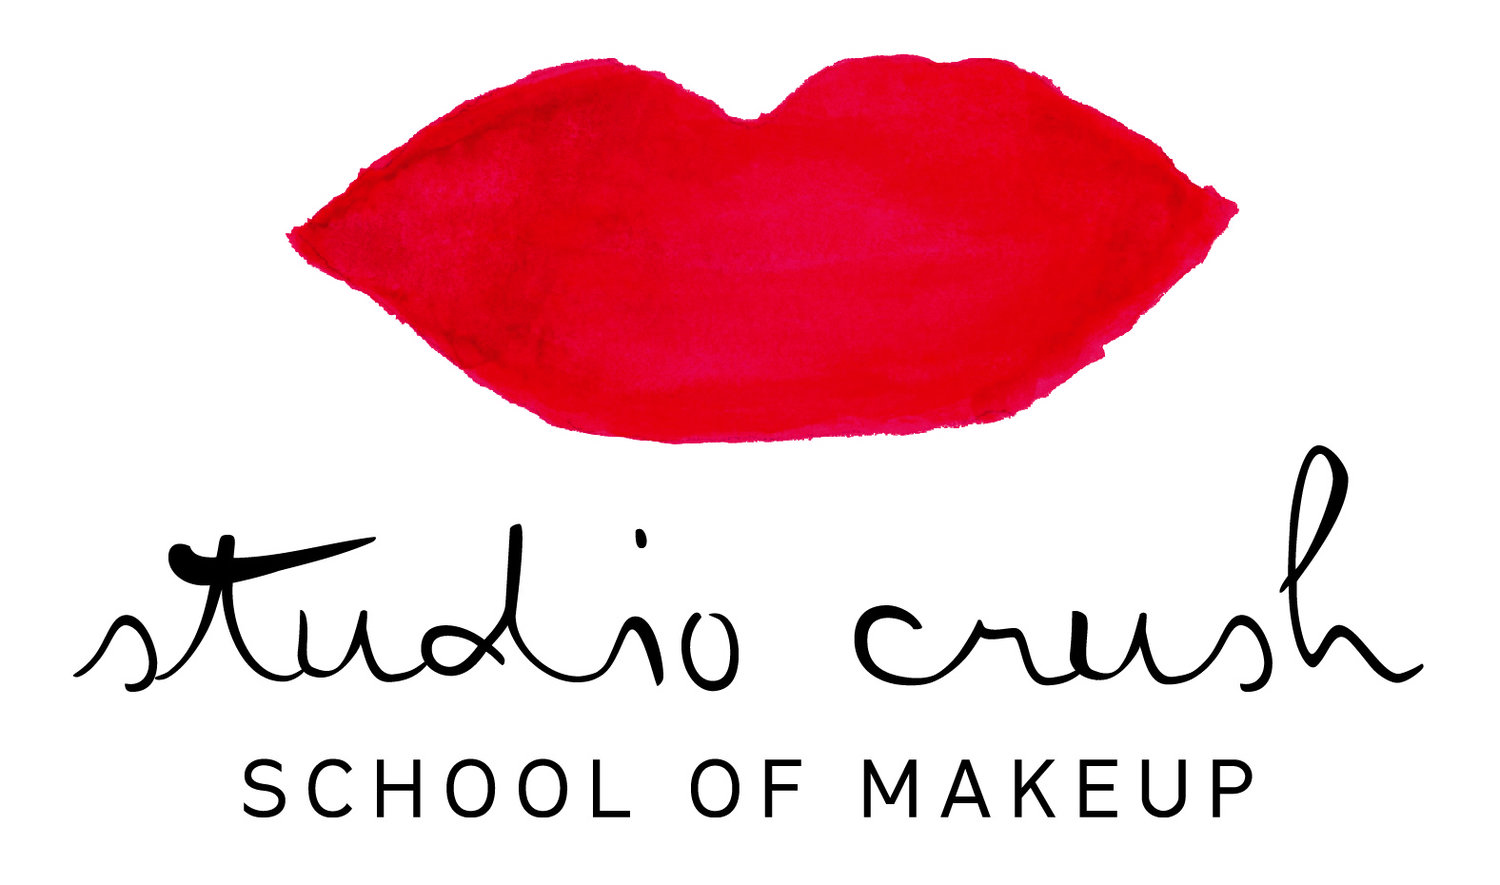 Studio Crush School of Makeup Atlanta